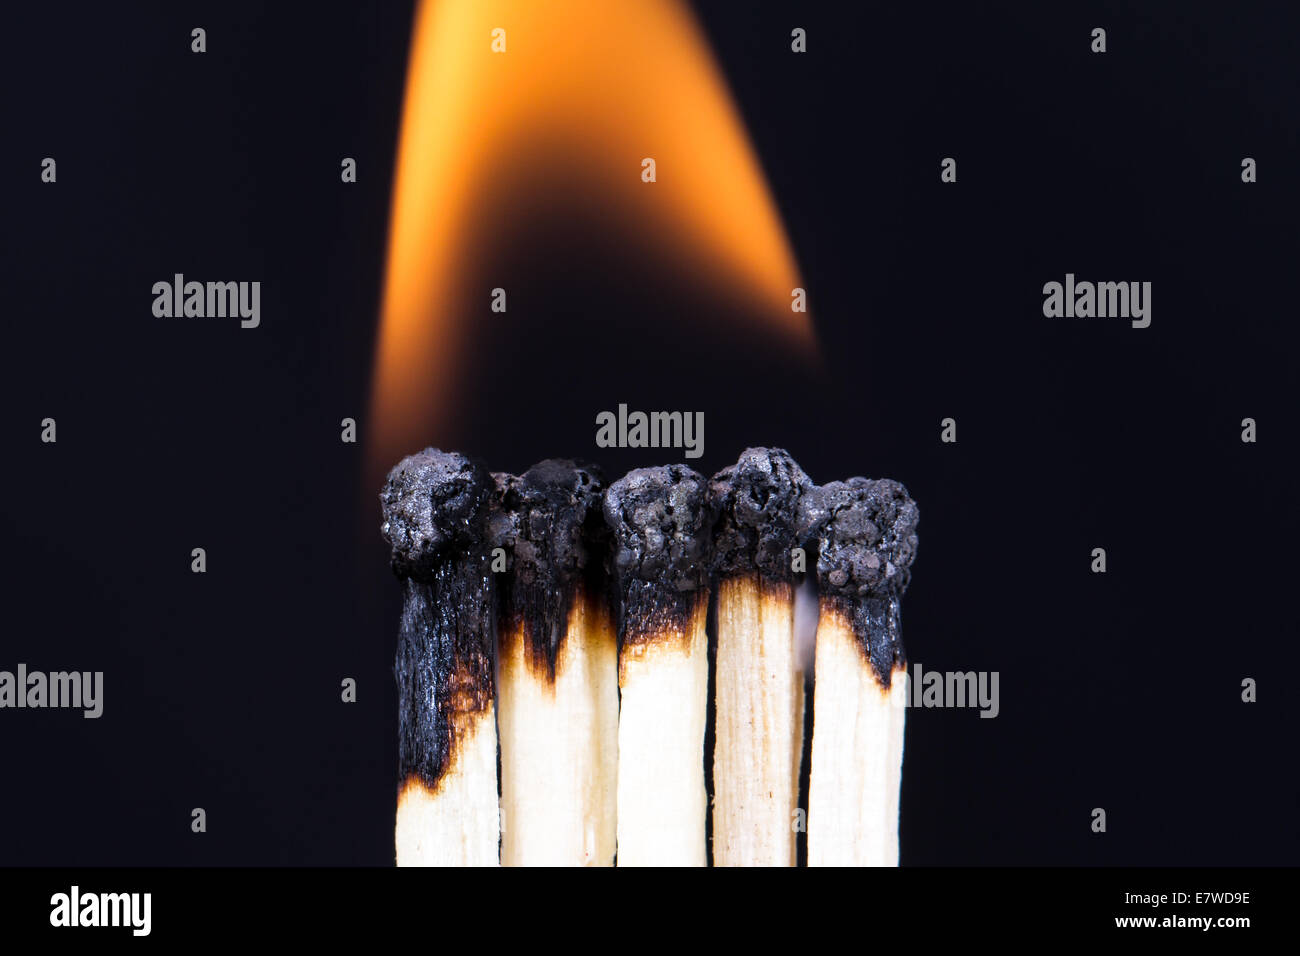 Teamwork concept, burning matches with flame on dark background. - Stock Image